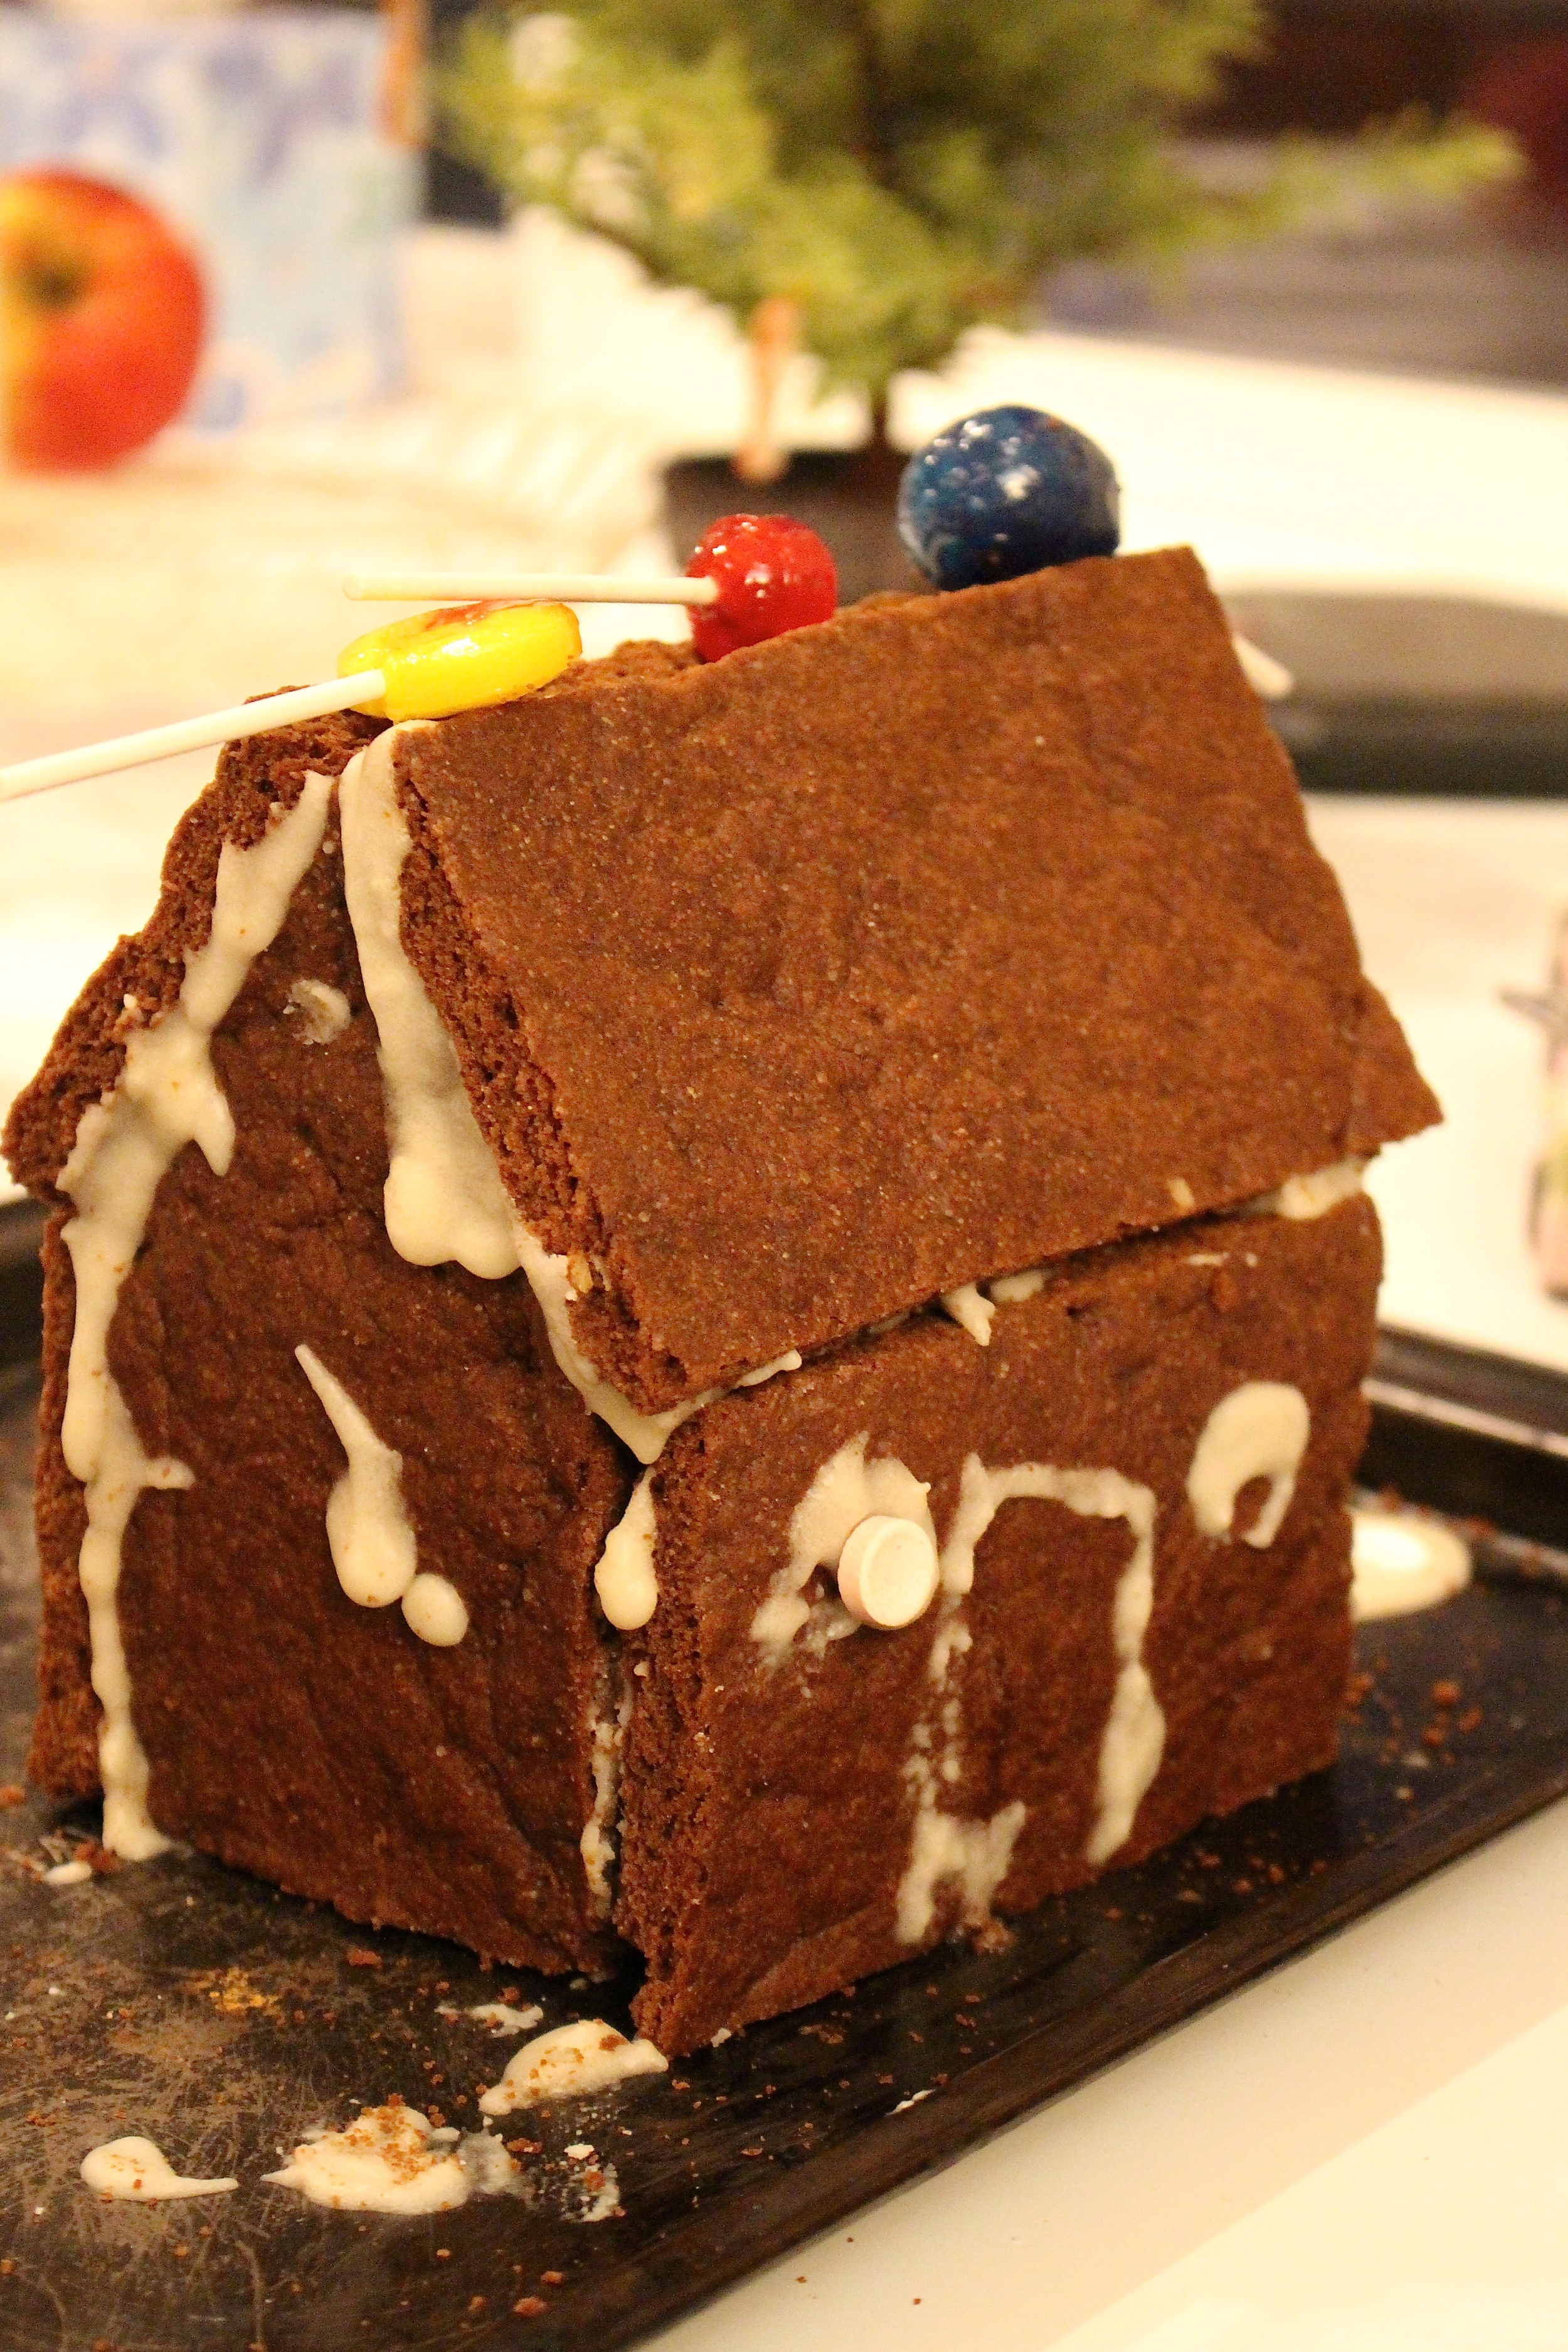 My son's gingerbread house